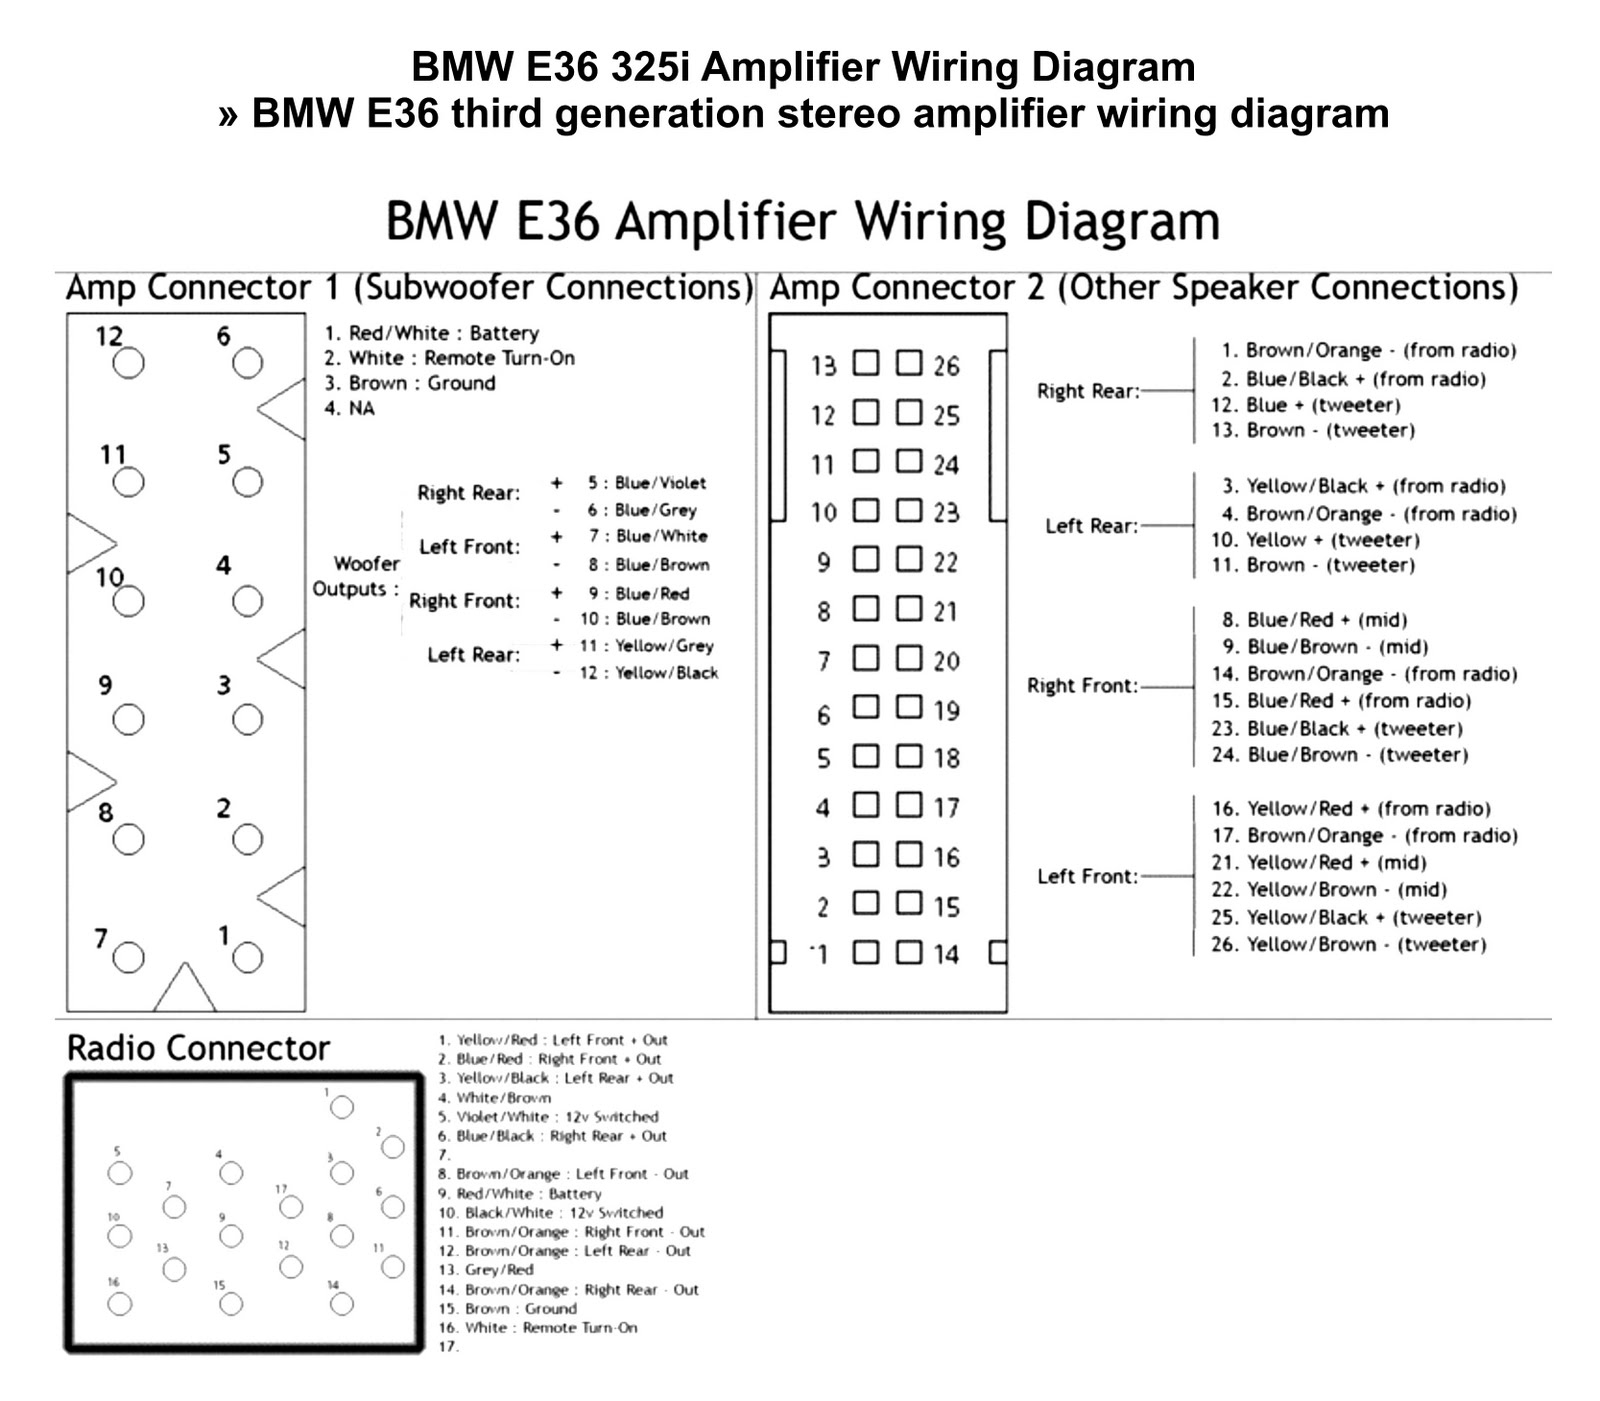 E90 Radio Wire Diagram On Trigger Xm Wiring Stereo Harness Amusing Bmw E46 Rear Light Images Best Image Ford Car Diagrams